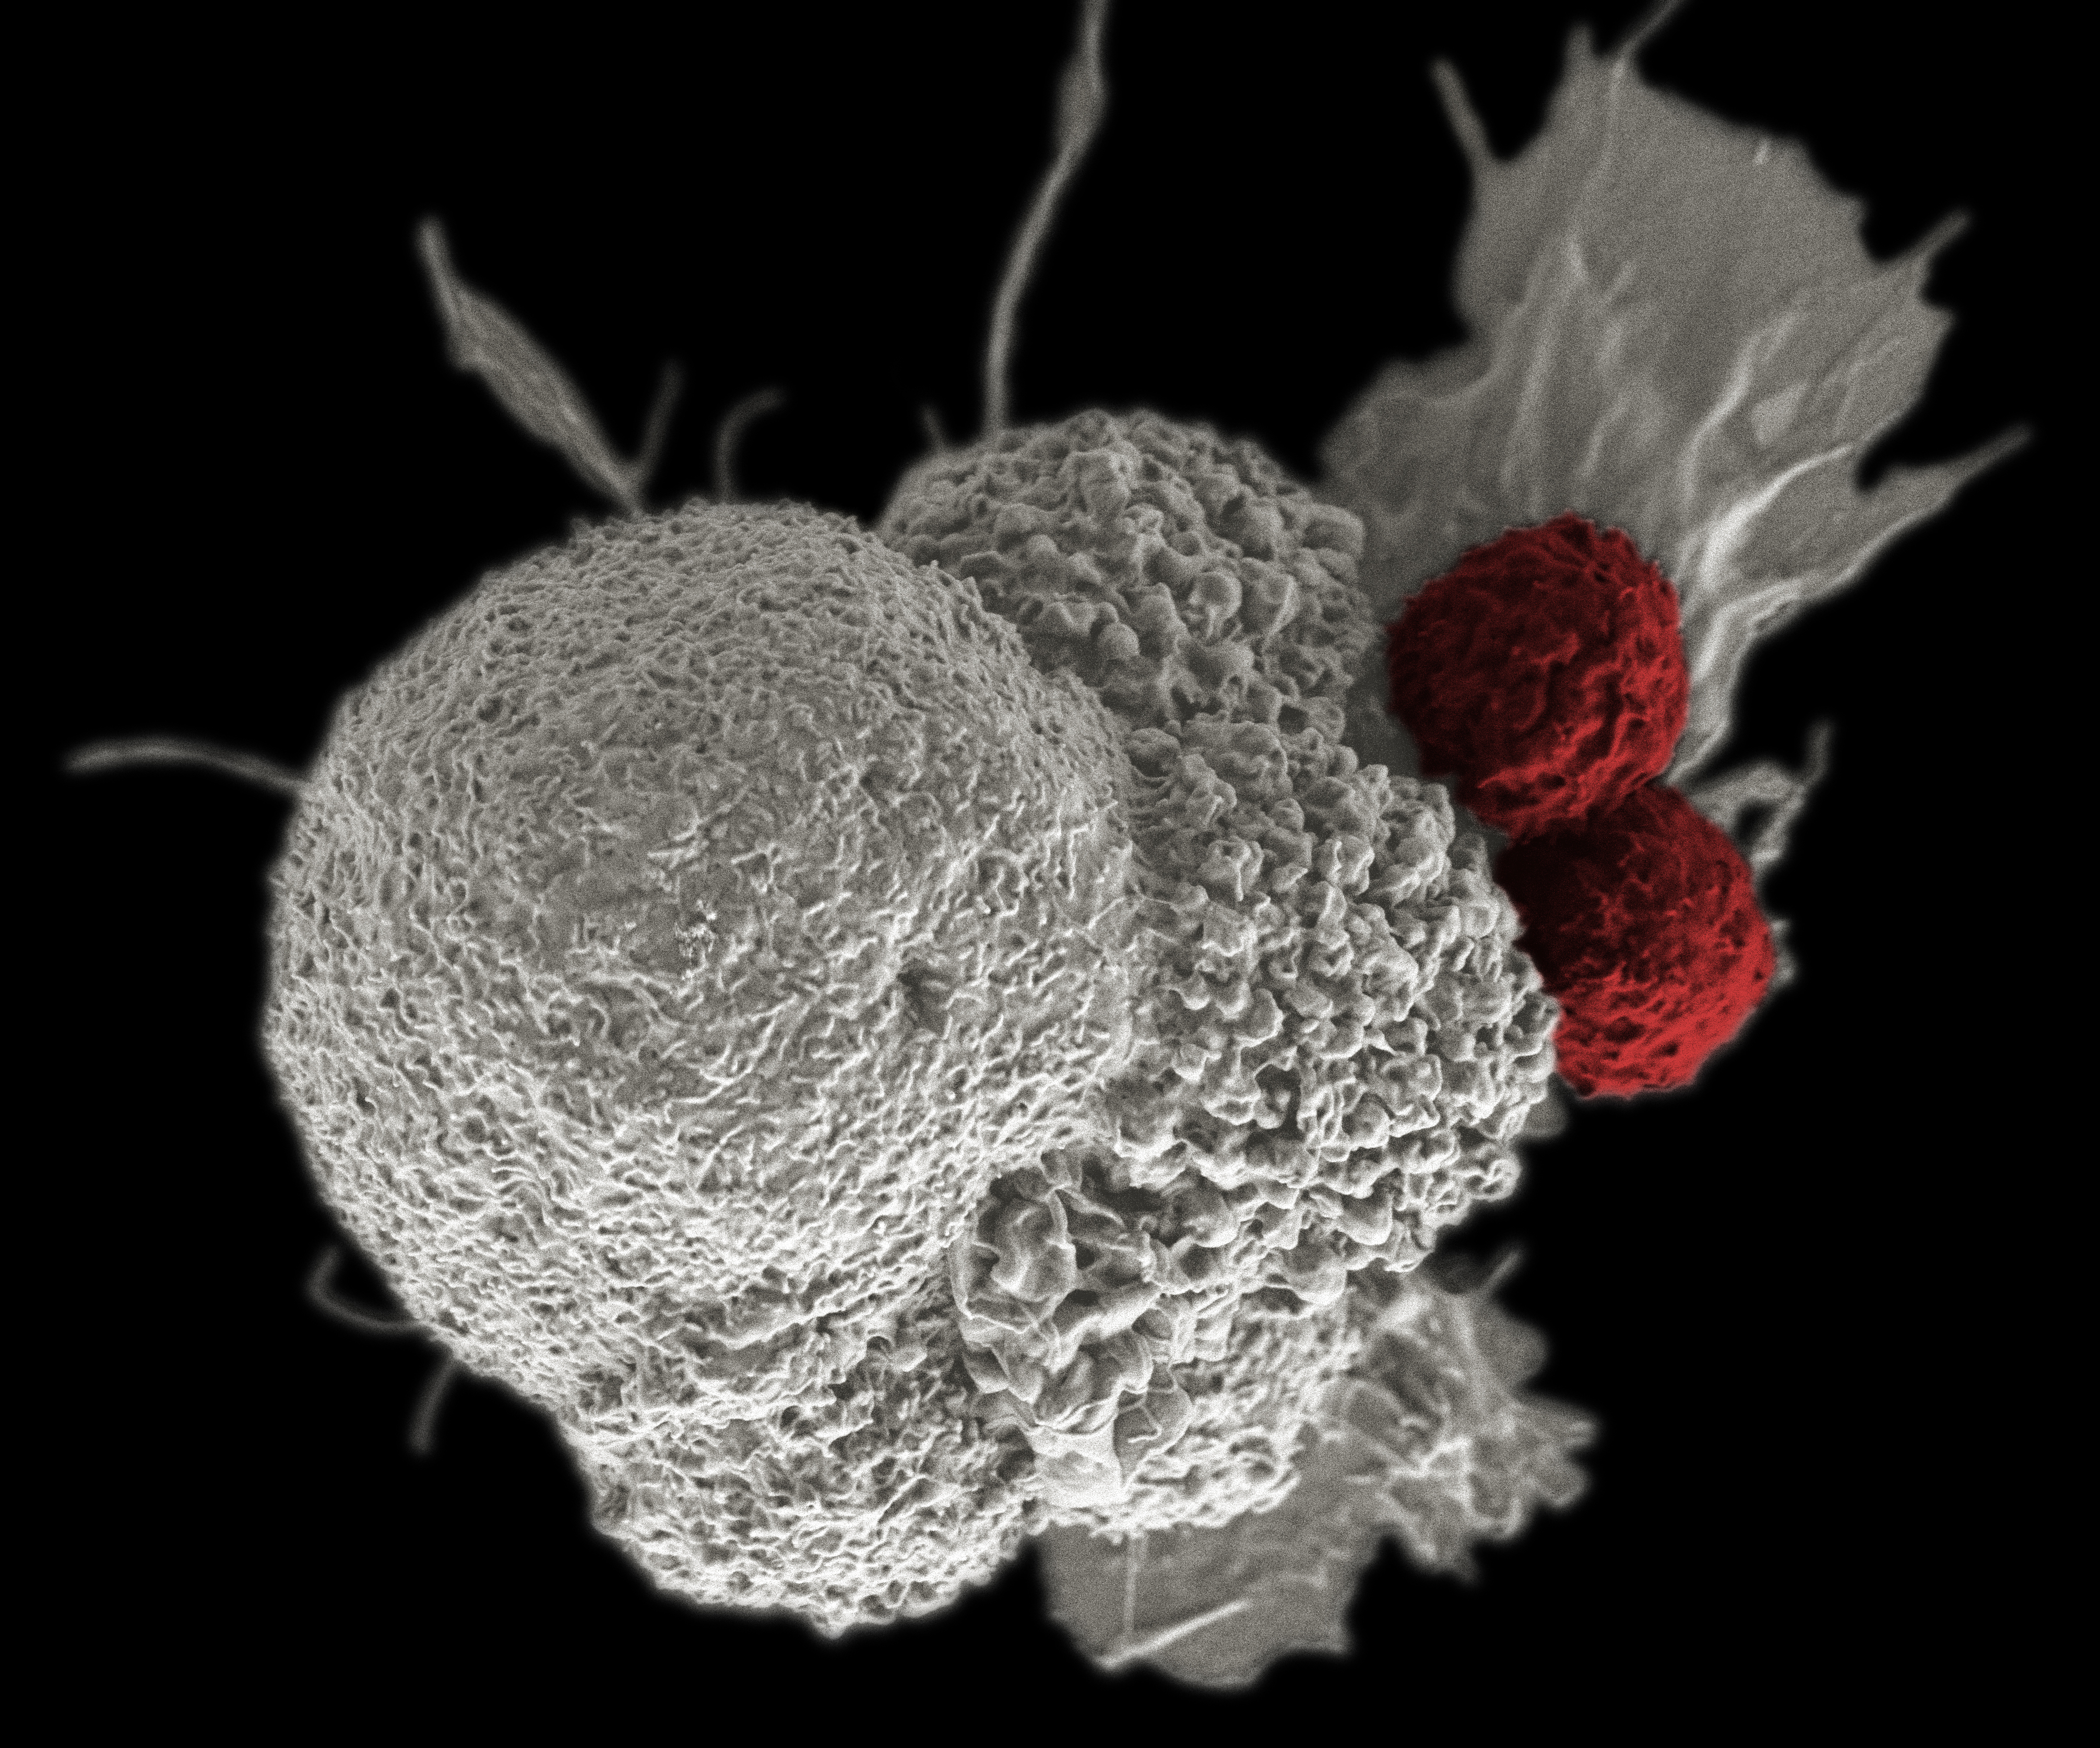 As seen with pseudo-coloured scanning electron microscopy, two cell-killing T-cells (red) attack a squamous mouth cancer cell (white) after a patient received a vaccine containing antigens identified on the tumour. Credit: Rita Elena Serda, National Cancer Institute\Duncan Comprehensive Cancer Center at Baylor College of Medicine